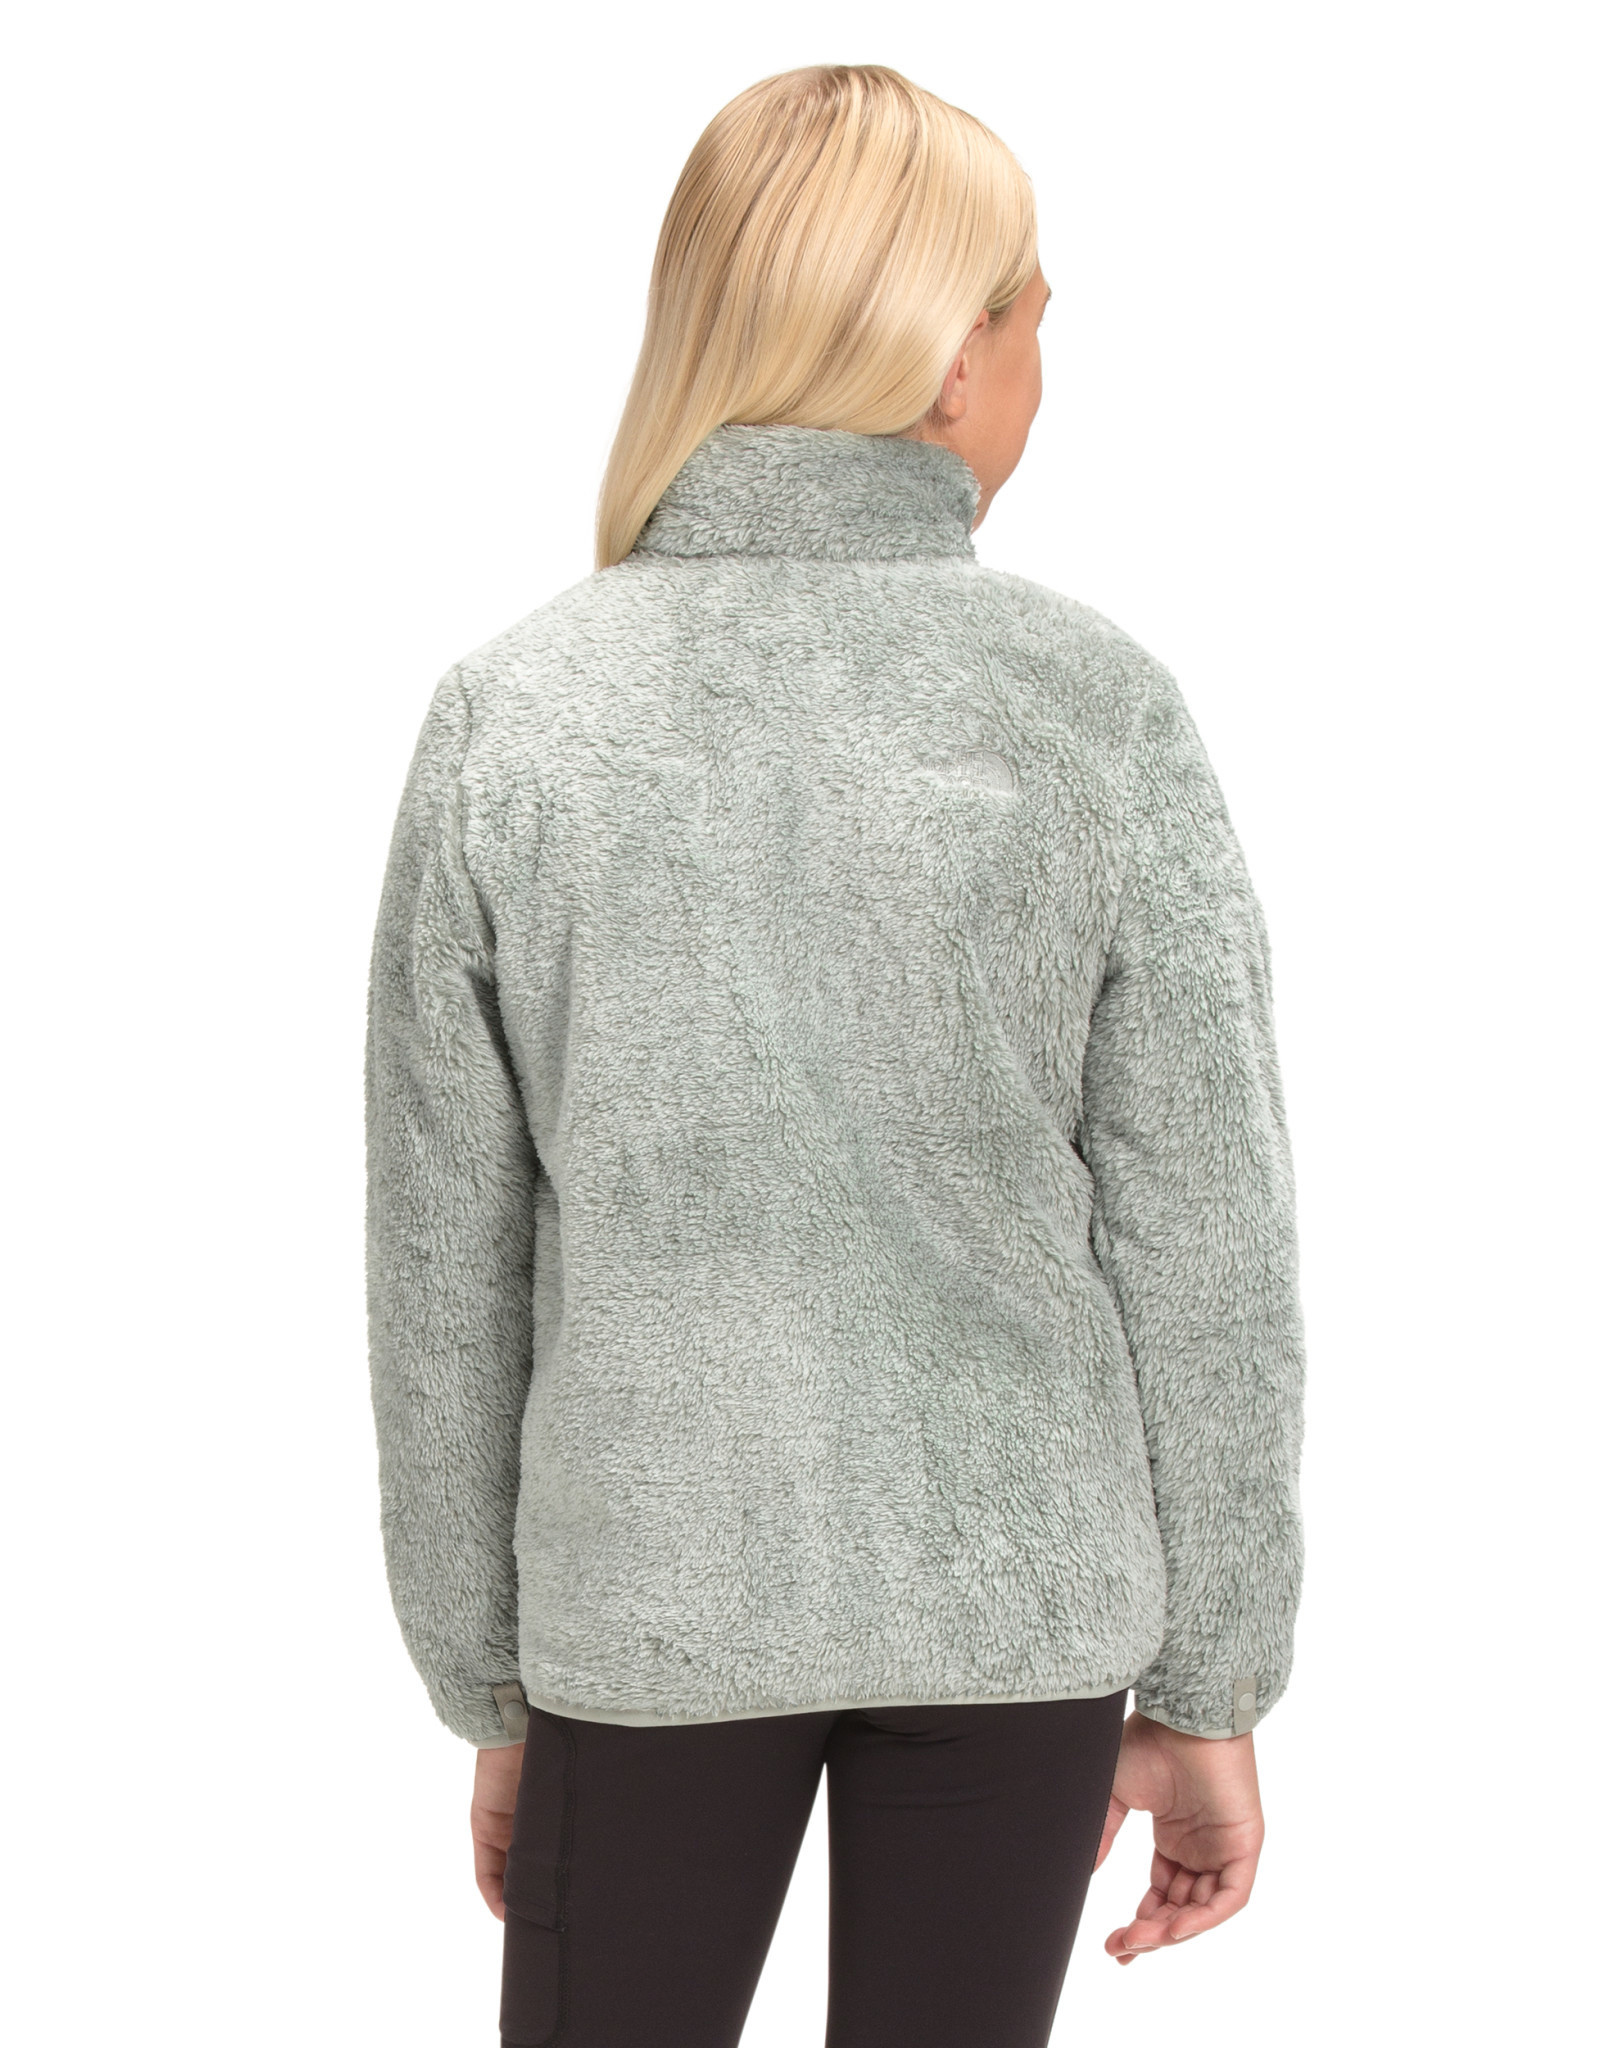 The North Face The North Face Girl's Suave Oso Fleece Jacket -S2021